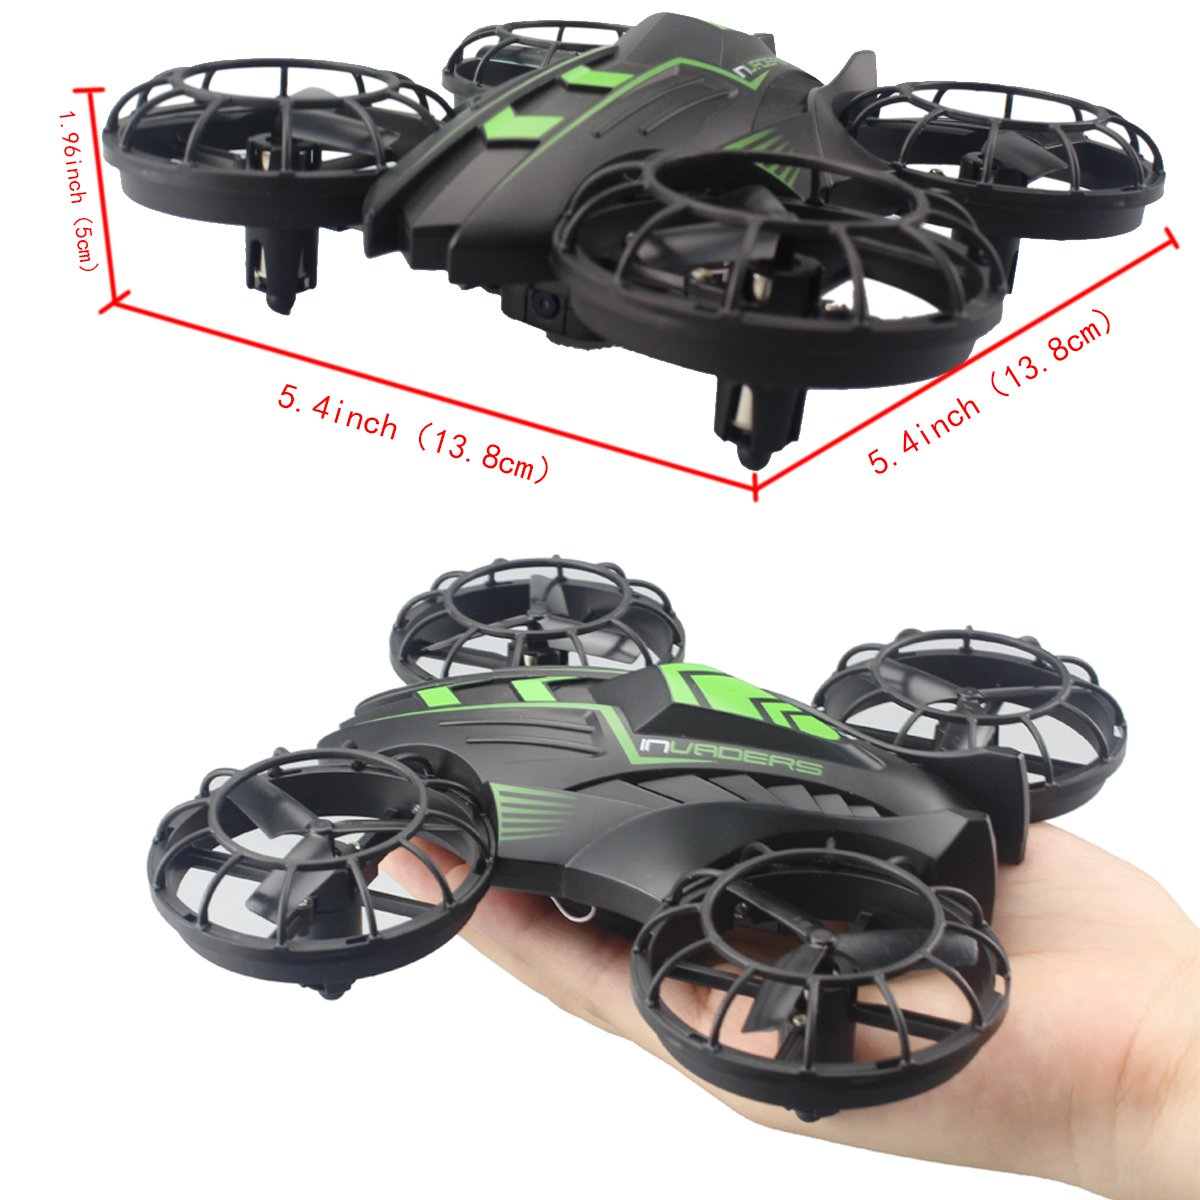 Fistone RC Drone WIFI FPV Quad-rotor 2.4G 4-Axis Gyro Altitude Hold Helicopters Portable Aircraft 3D Flip Remote Control UFO Exploration multirotors HD Camera Electronic Hobby Toys(Green)